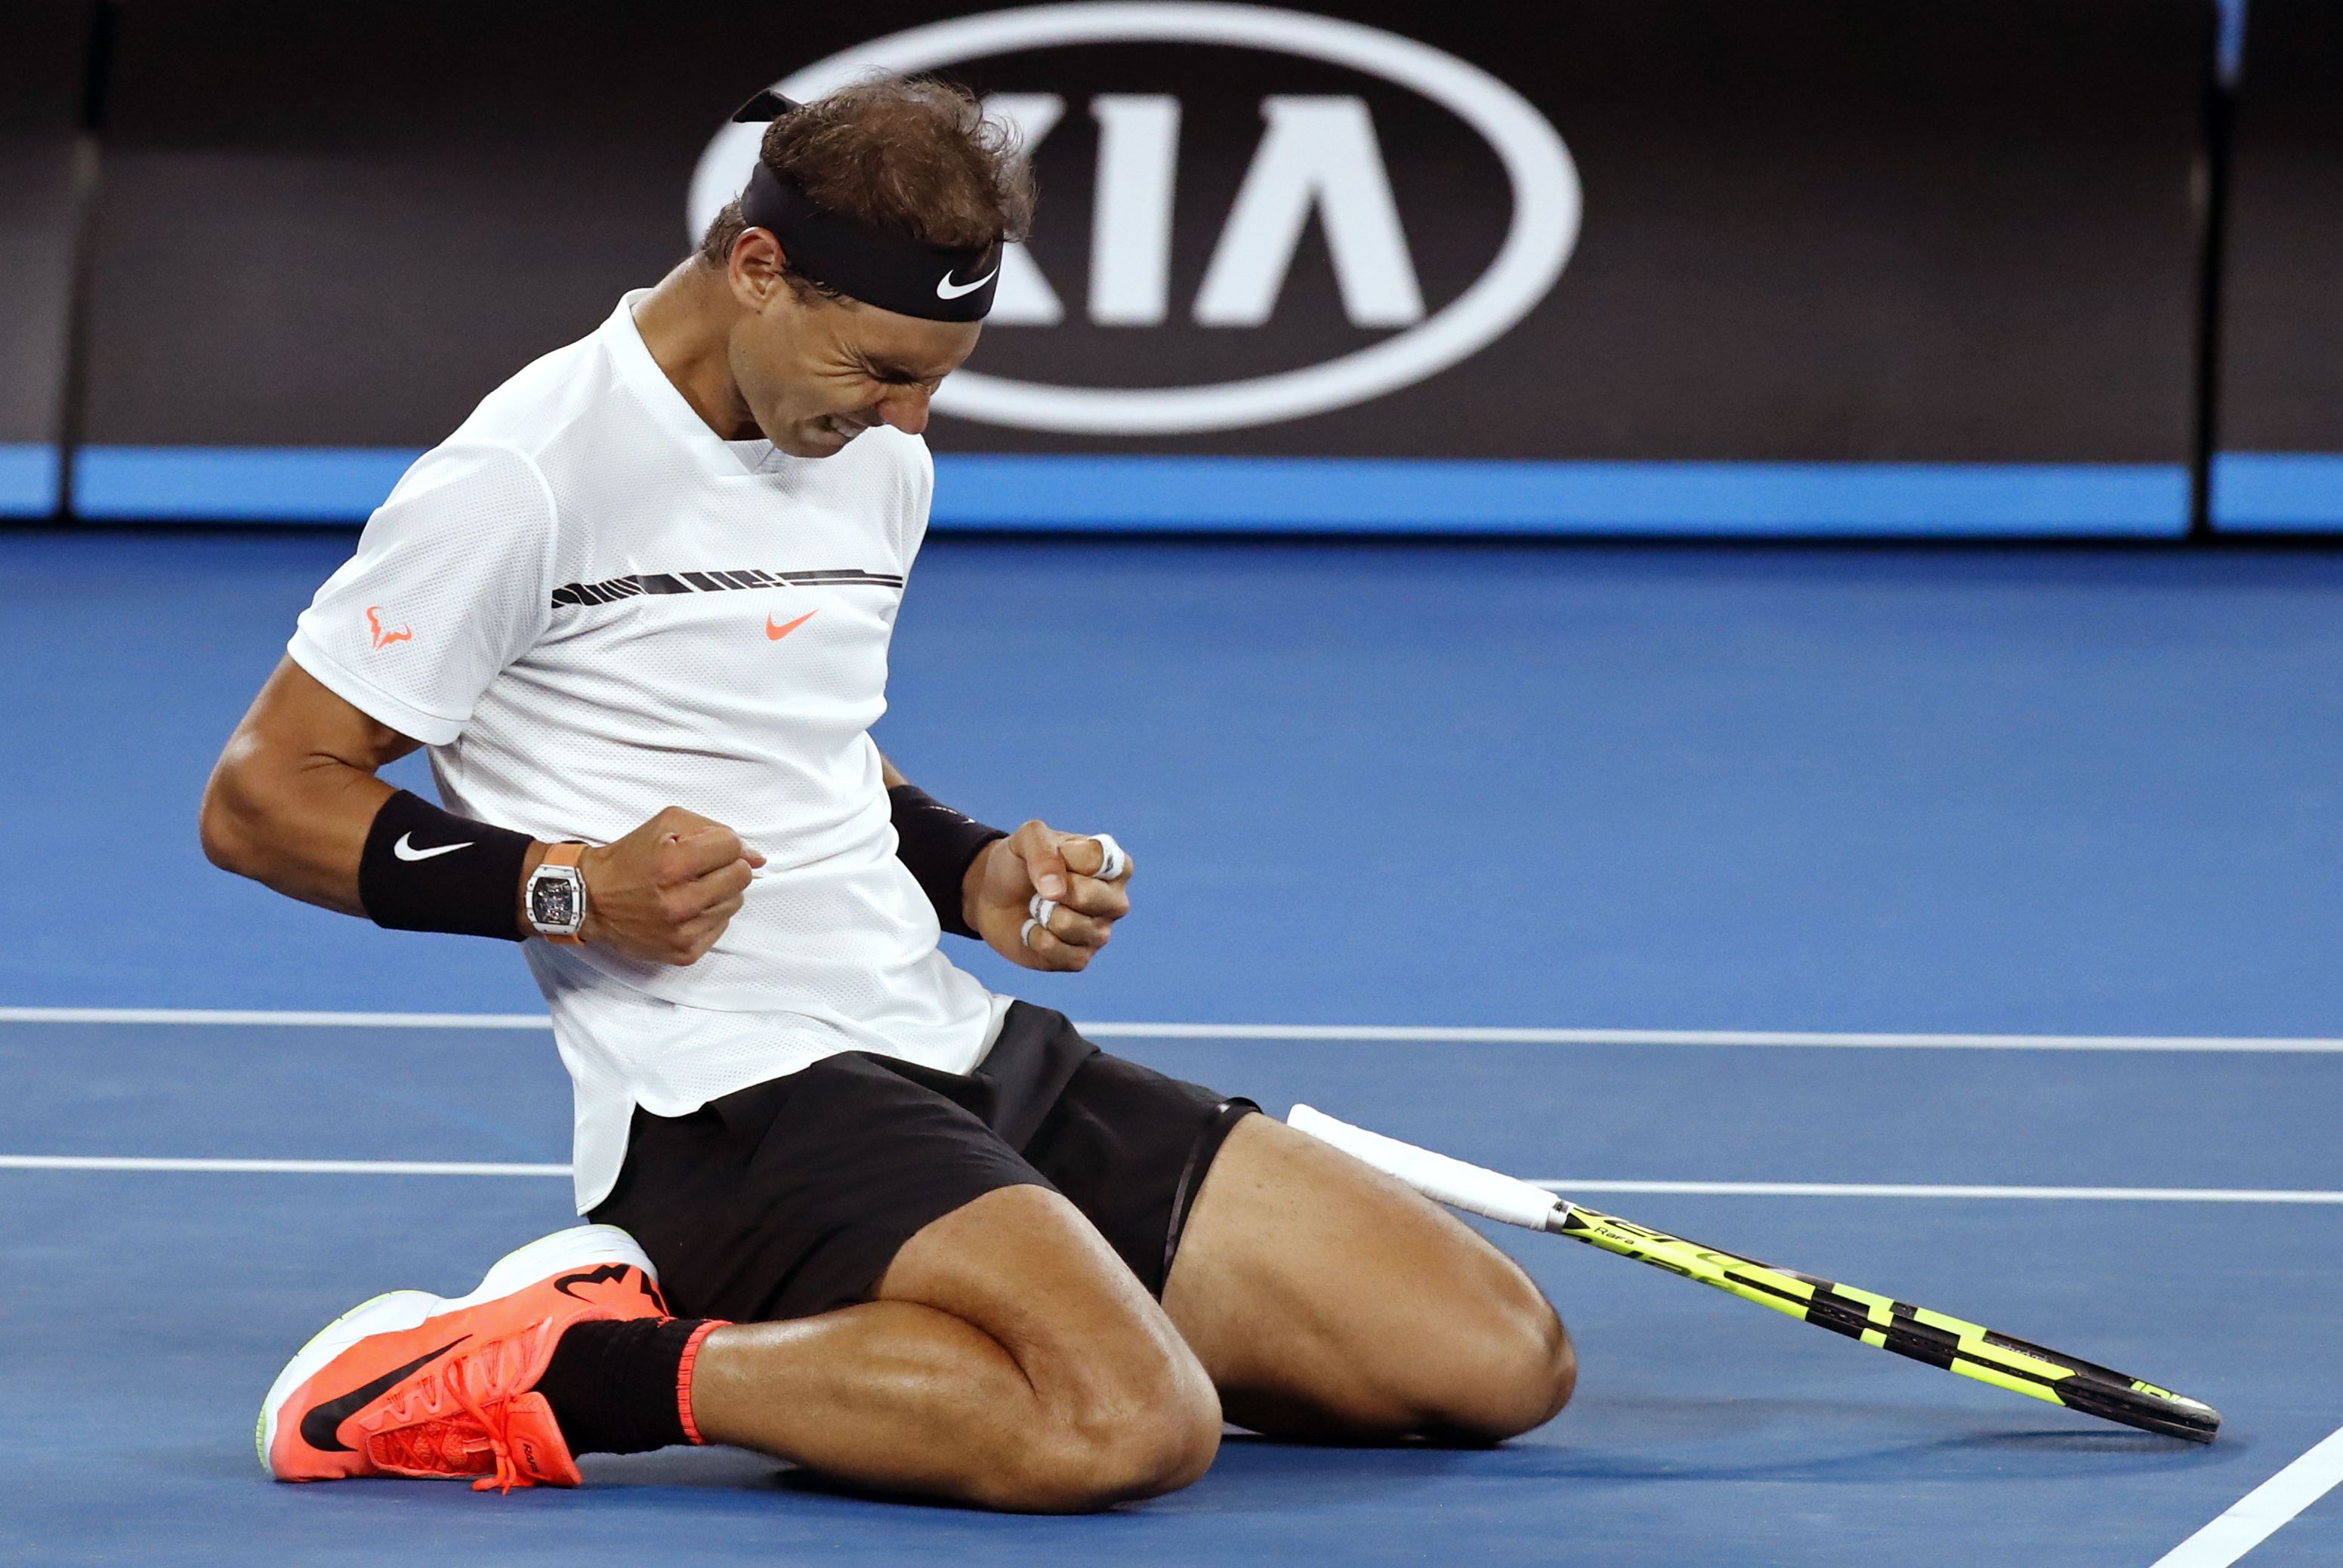 Spain's Rafael Nadal celebrates after defeating Canada's Milos Raonic during their quarterfinal at the Australian Open tennis championships in Melbourne, Australia, Wednesday, Jan. 25, 2017. (AP Photo/Kin Cheung)